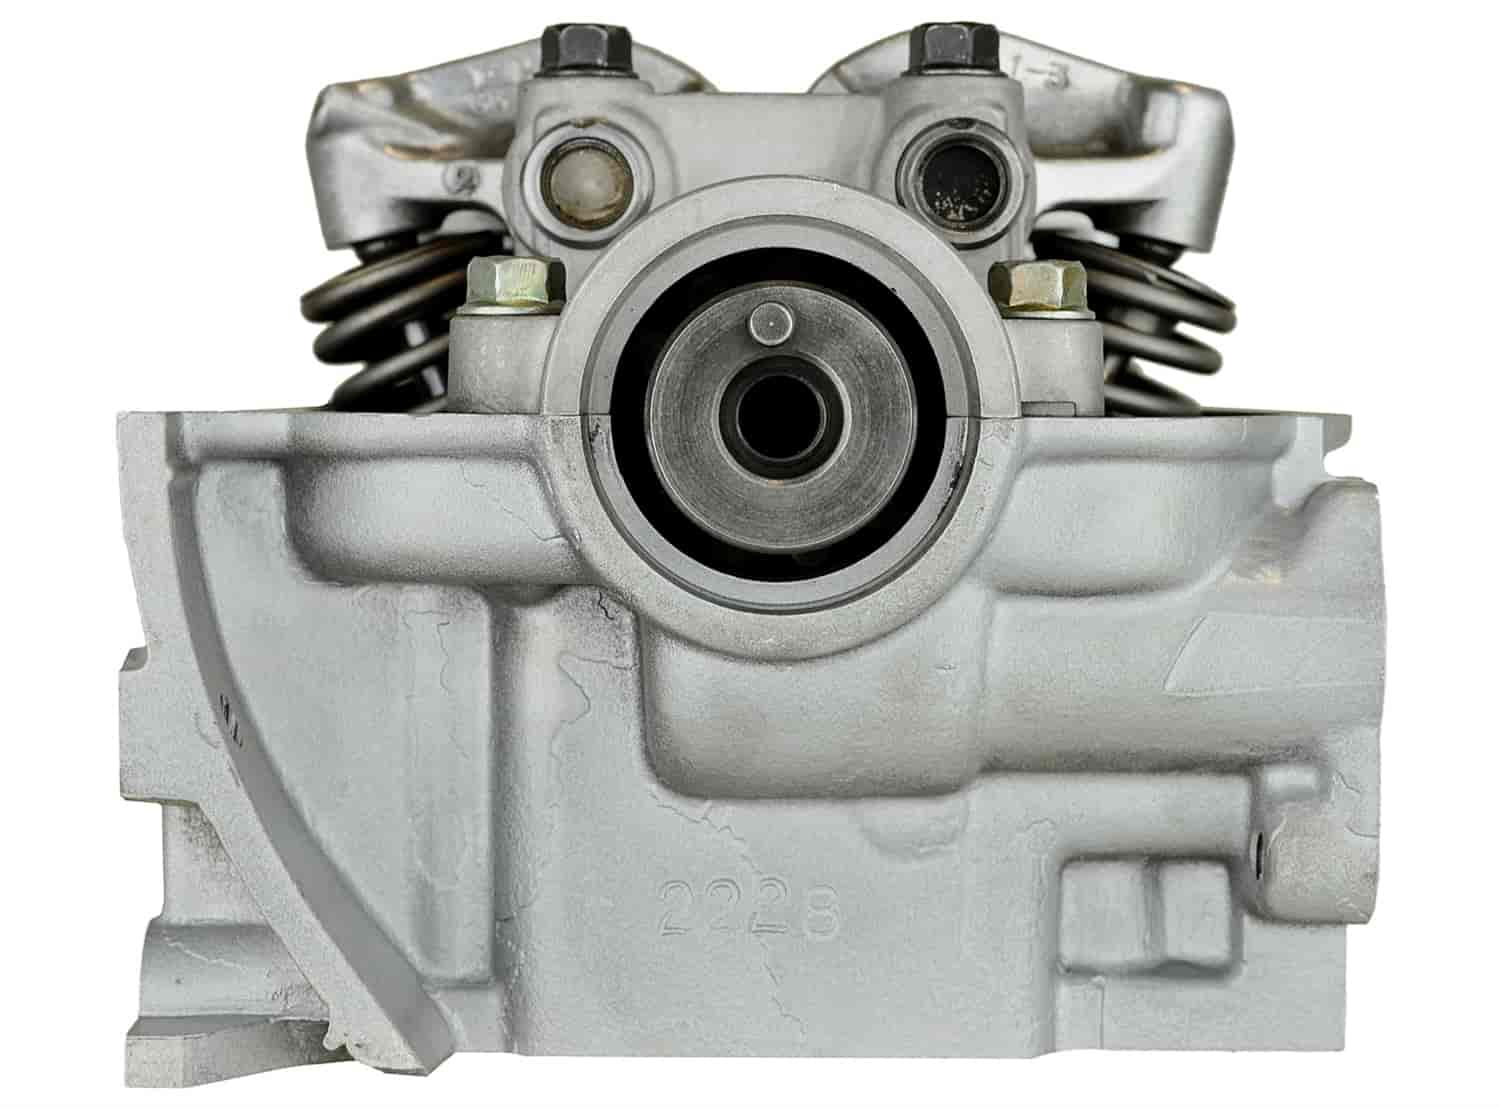 ATK Engines Remanufactured Cylinder Head for 1989-1992 Mitsubishi/Plymouth  with 2 0L L4 4G63